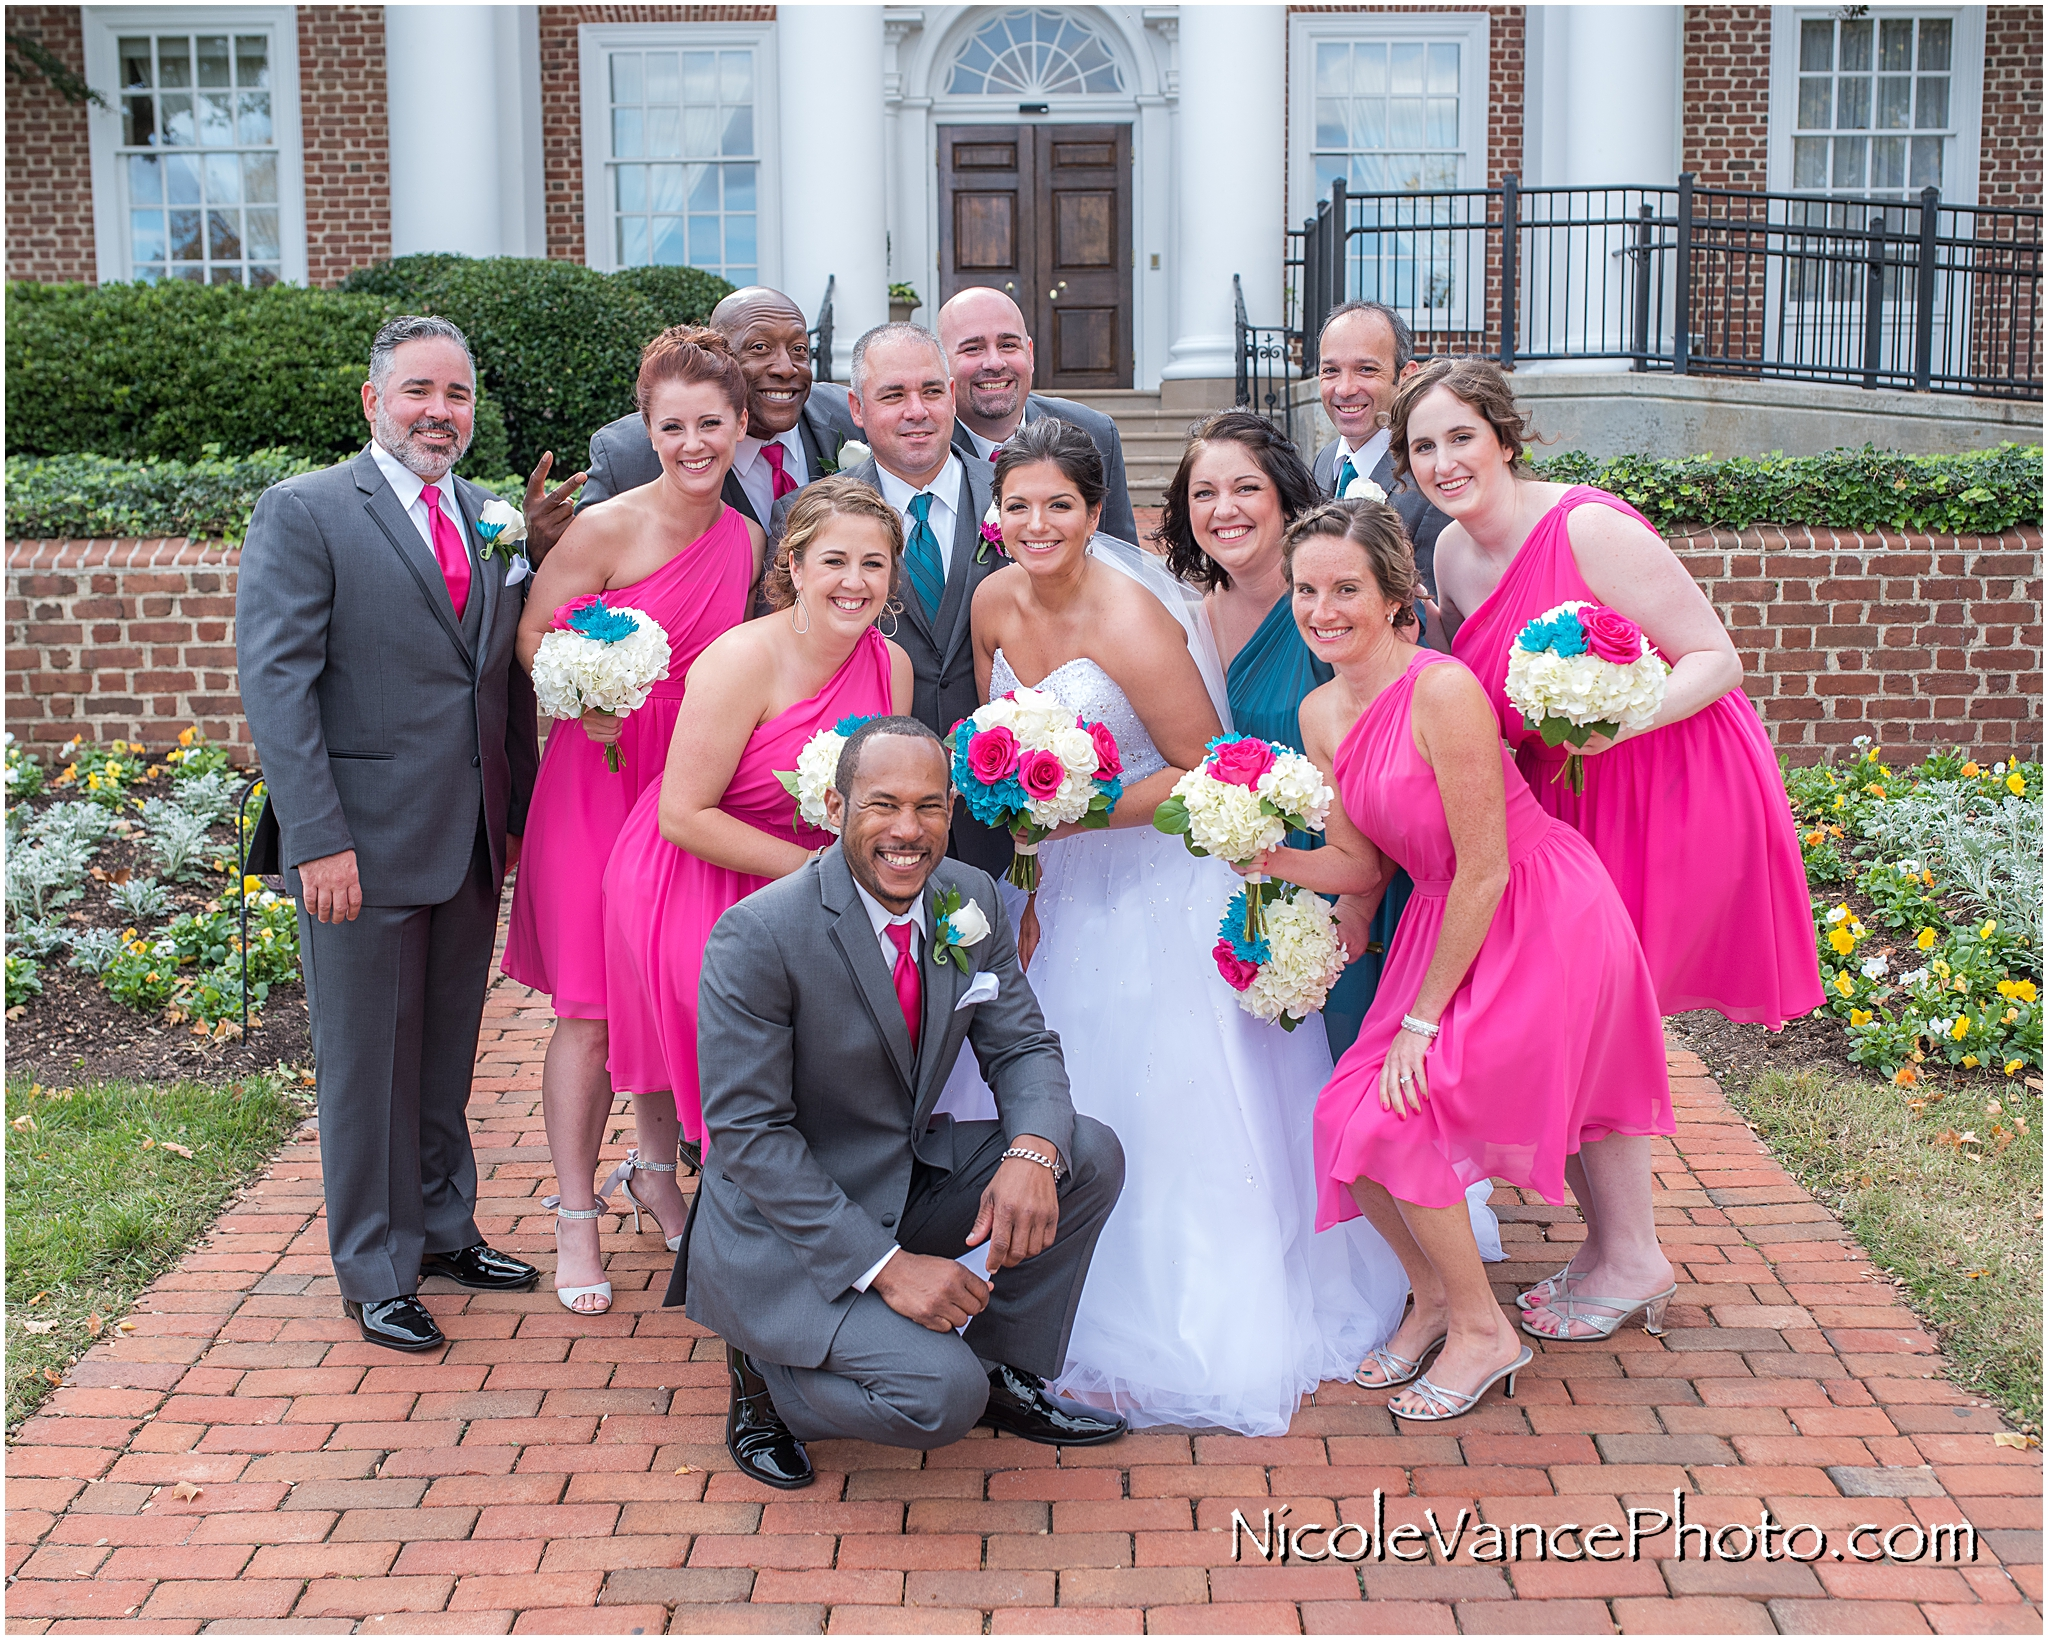 Wedding party portrait on the steps at Virginia Crossings.